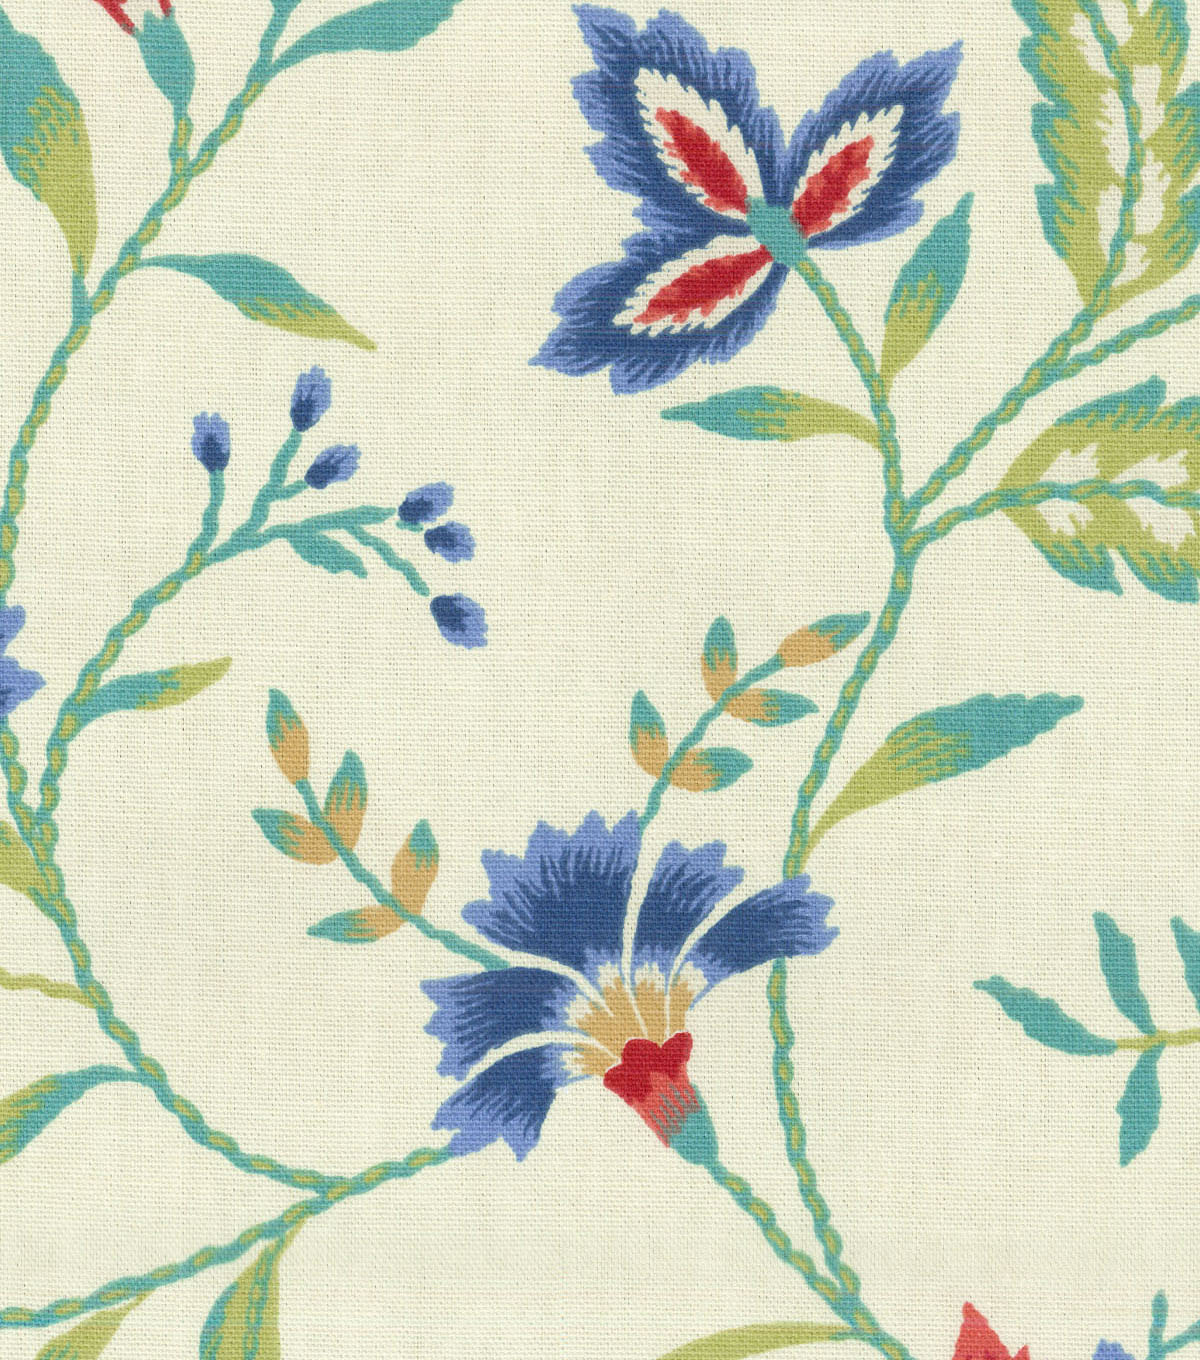 Waverly Upholstery Fabric 8x8\u0022 Swatch-Carolina Crewel Bluebell